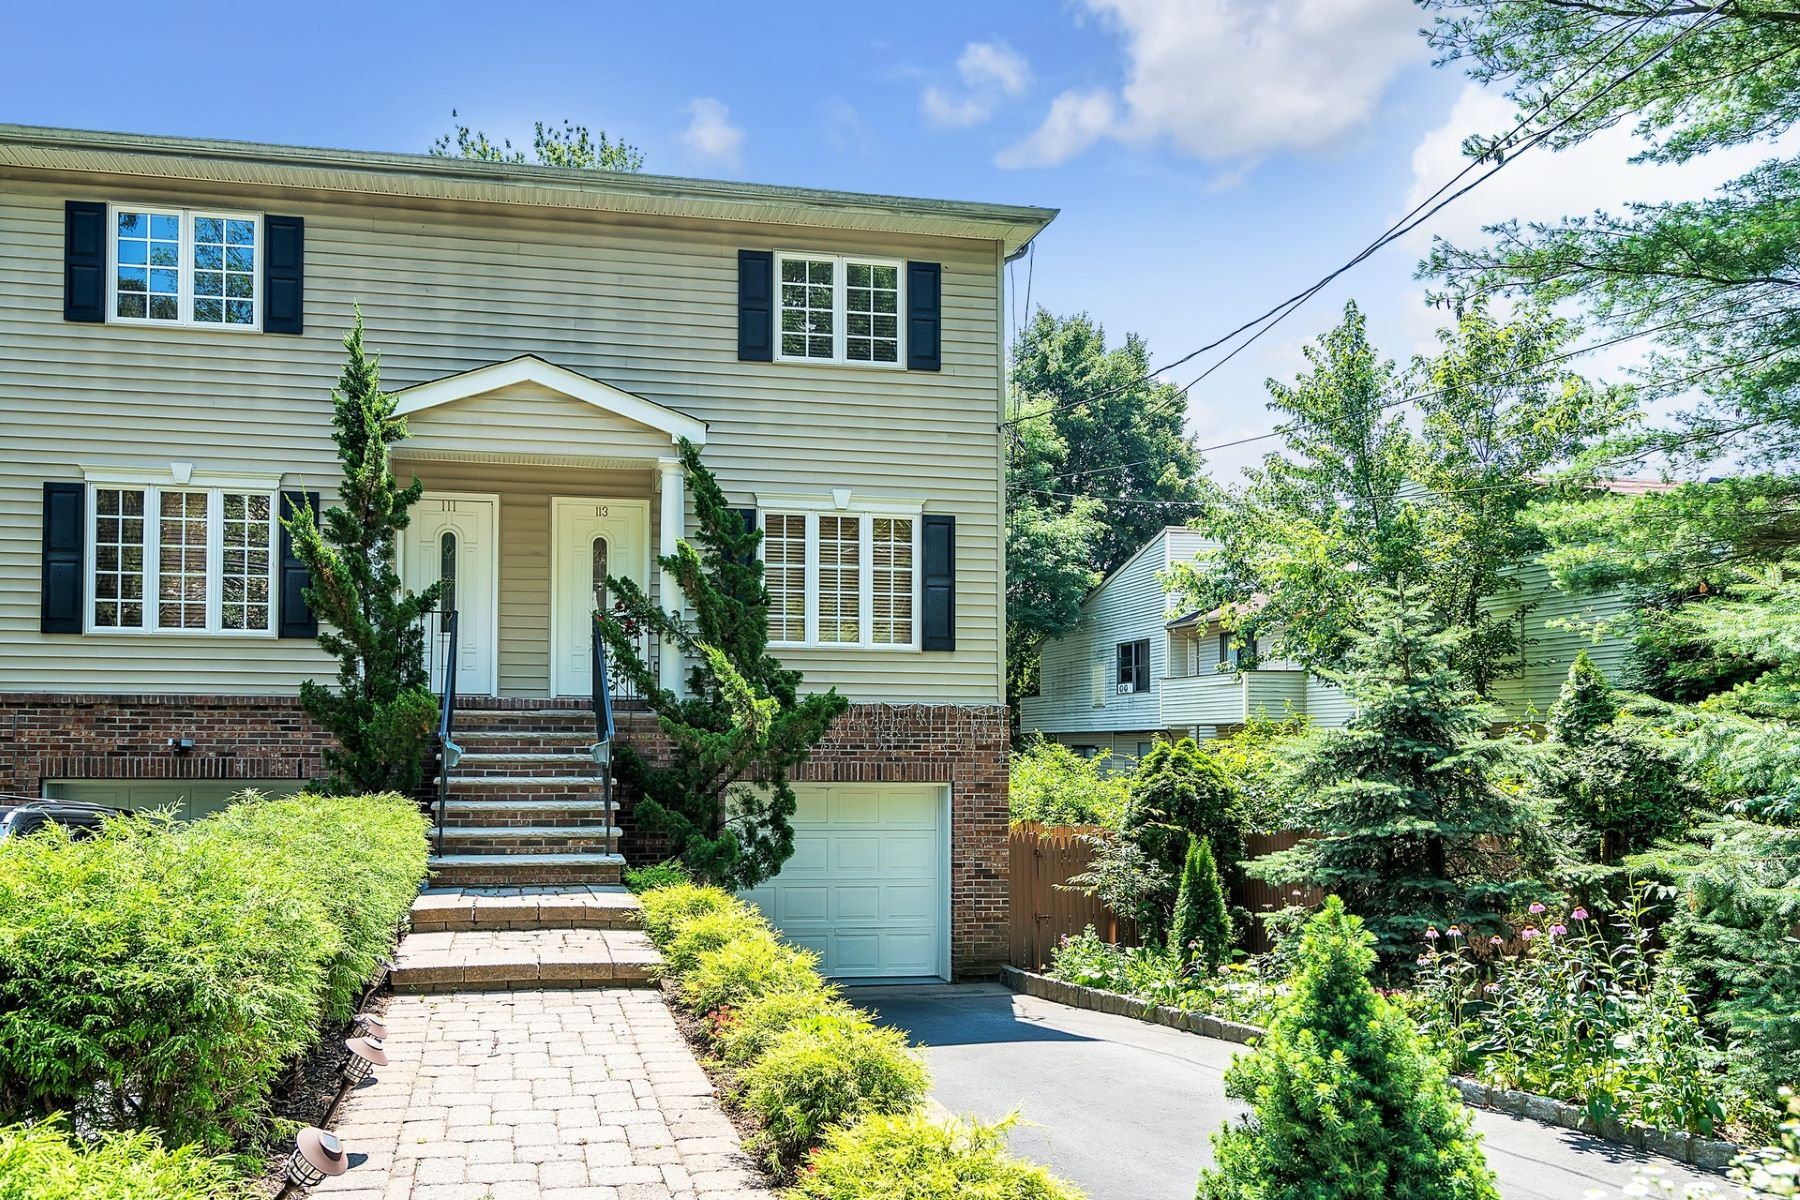 Duplex for Sale at Pristine and Bright 113 Lafayette Pl, Englewood, New Jersey 07631 United States